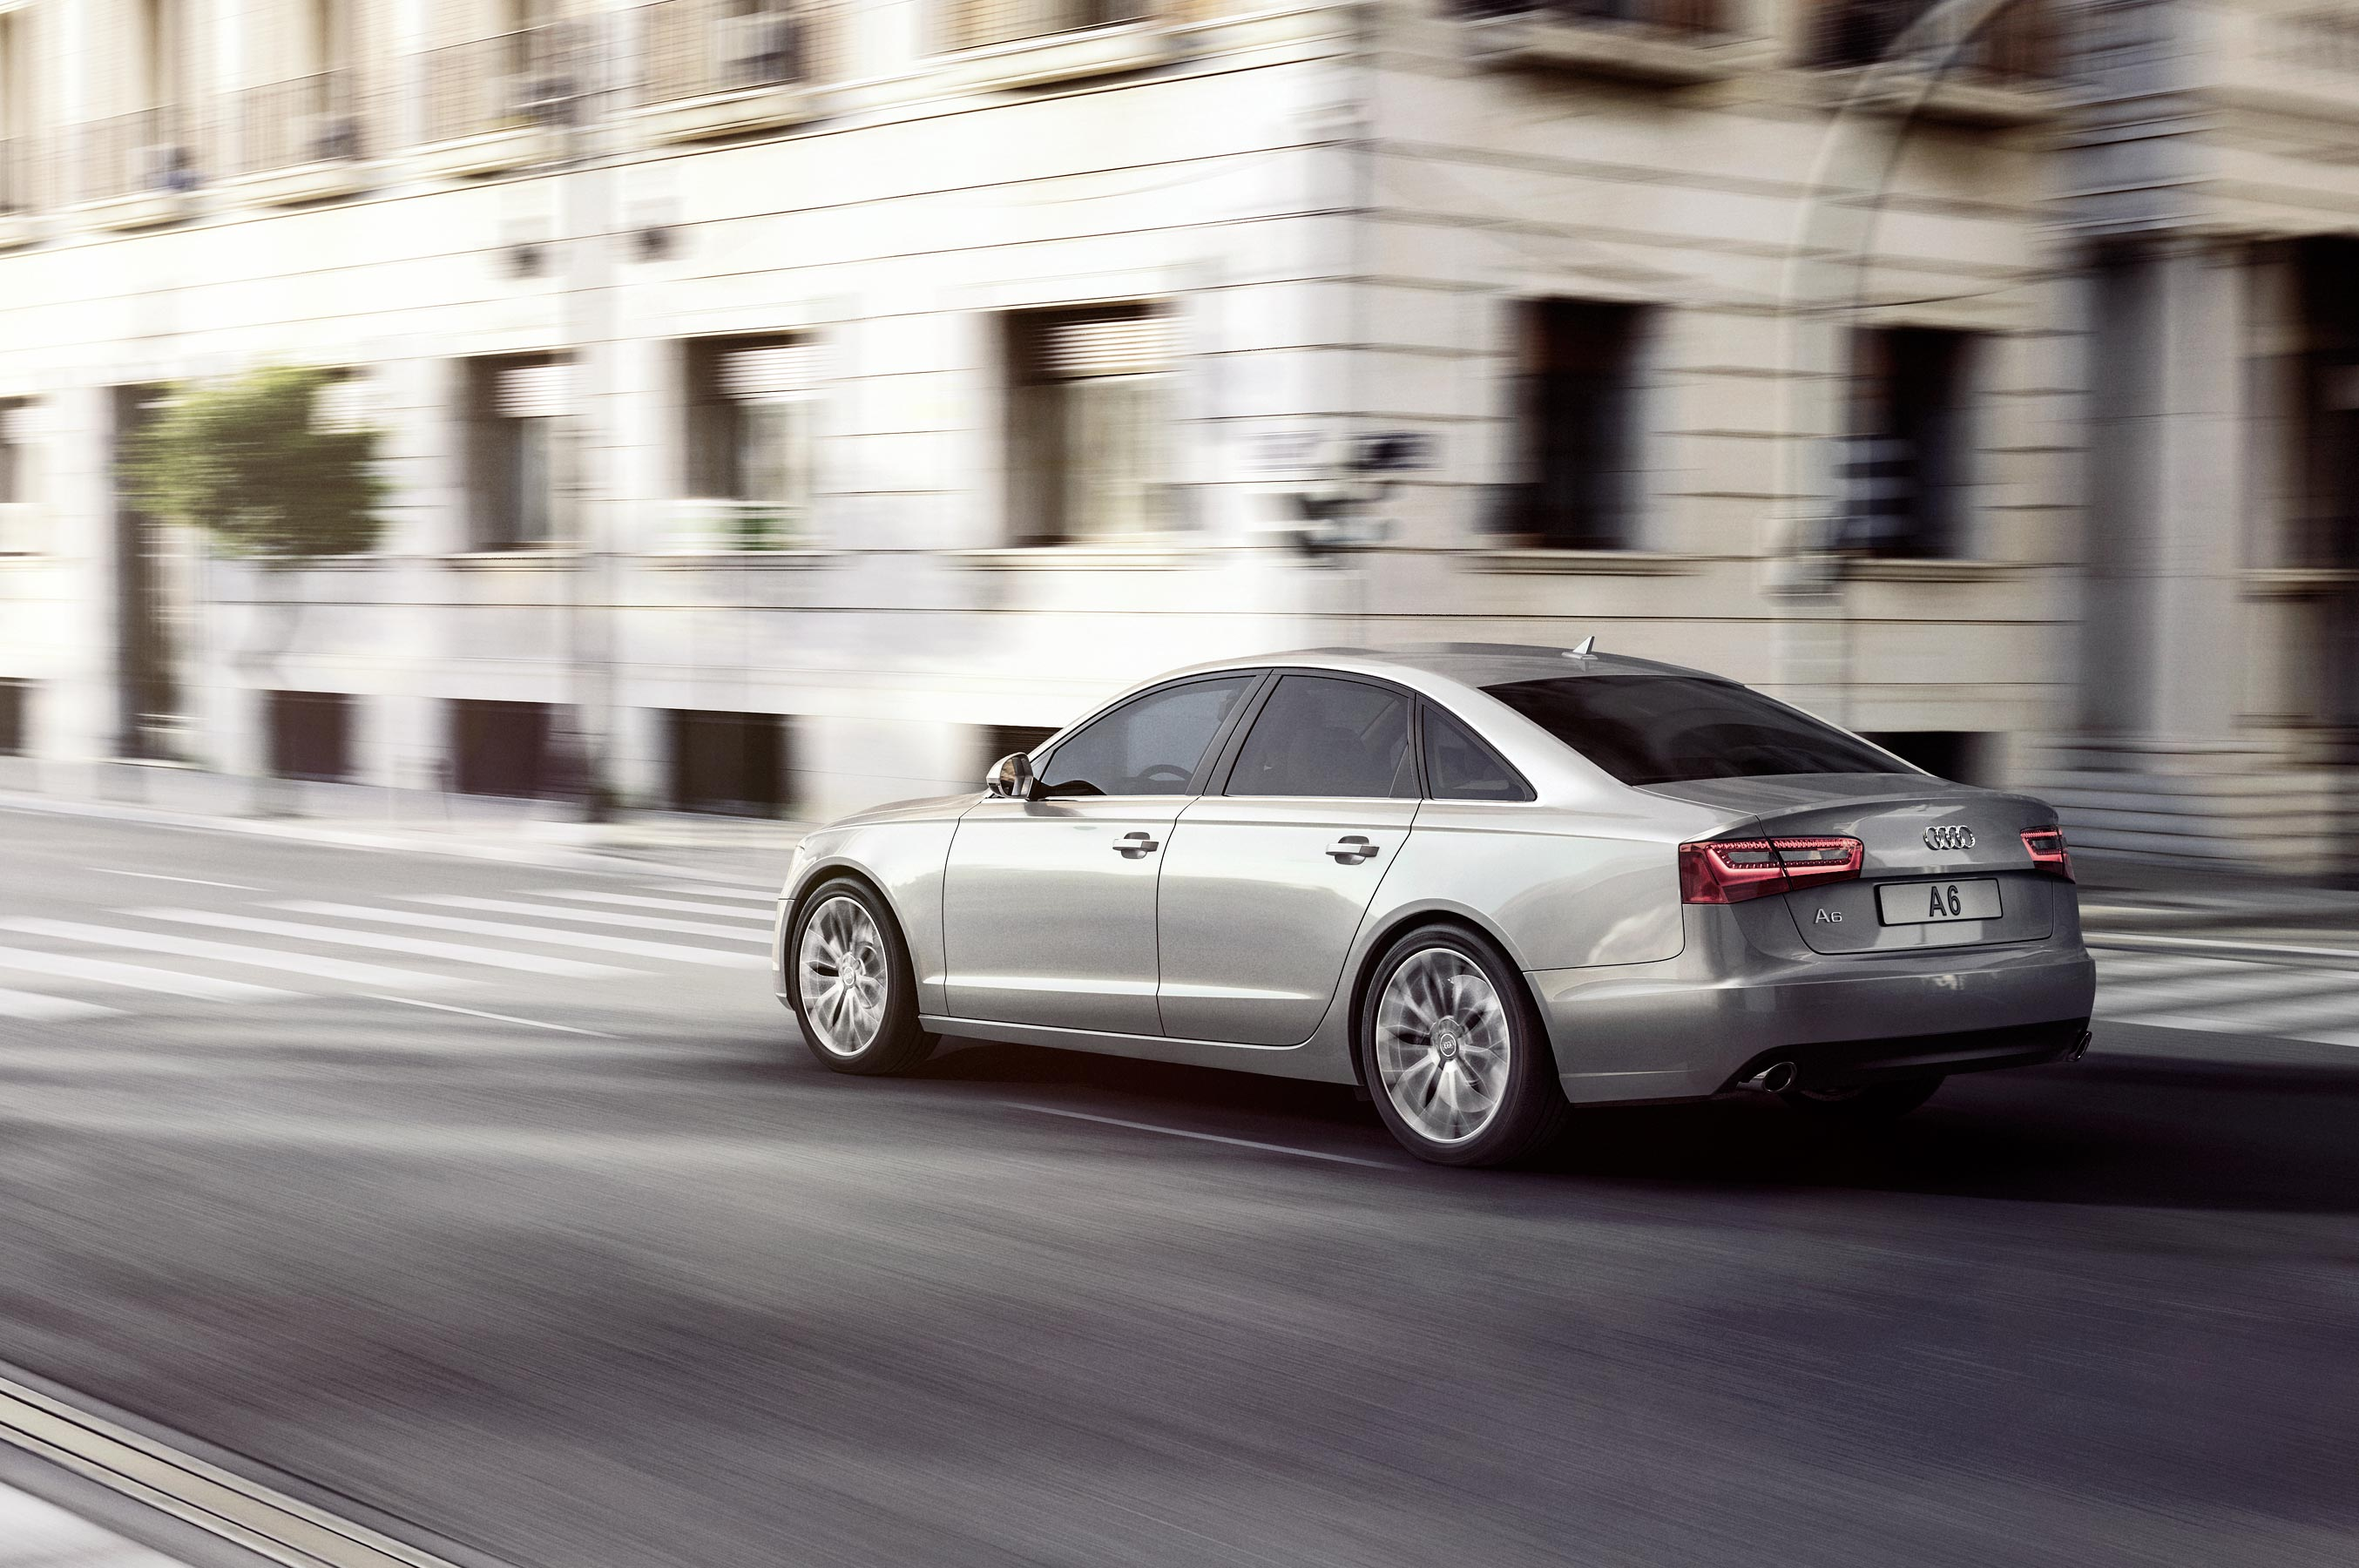 audi_cgi_exterior_location_tank_london_02